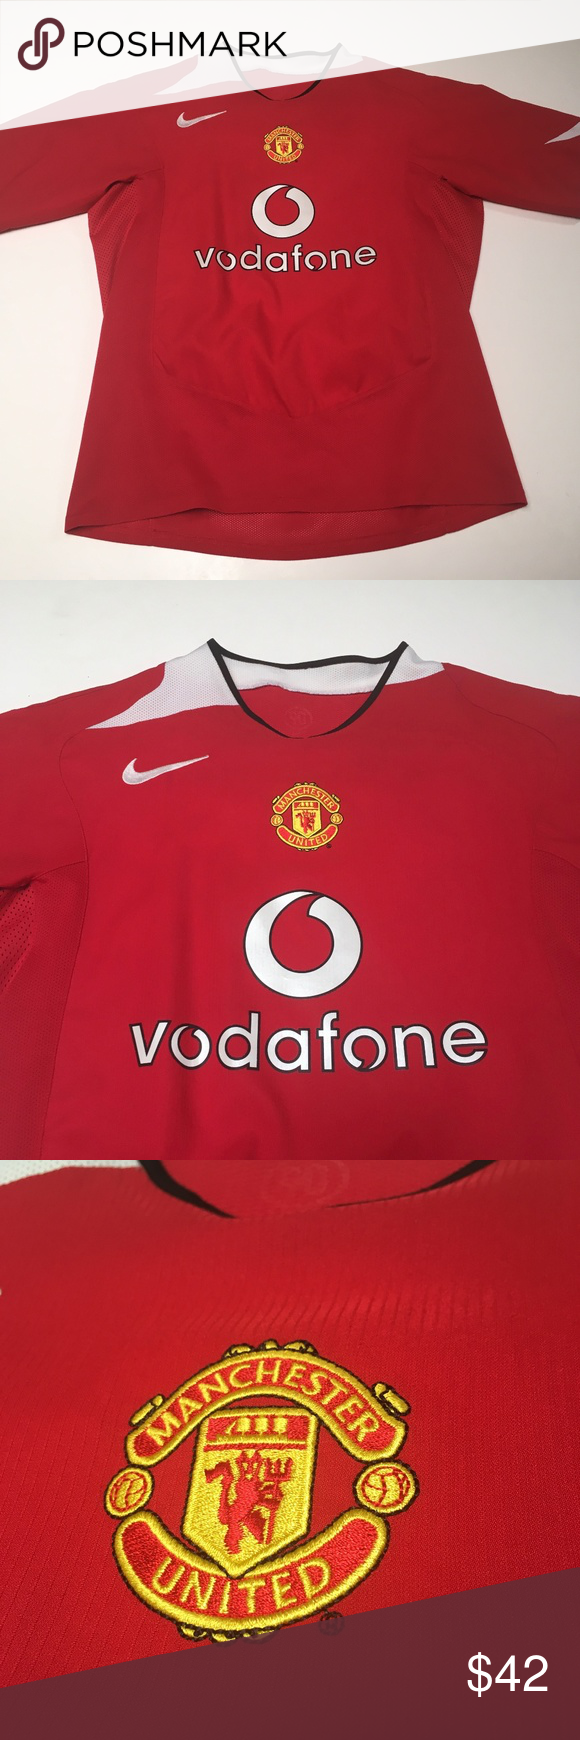 b7885e3e357 Manchester United Vodafone Nike 2004 Jersey Awesome jersey Tagless but  measurements can fit M L Trusted Nike quality Please check measurements for  fit ...